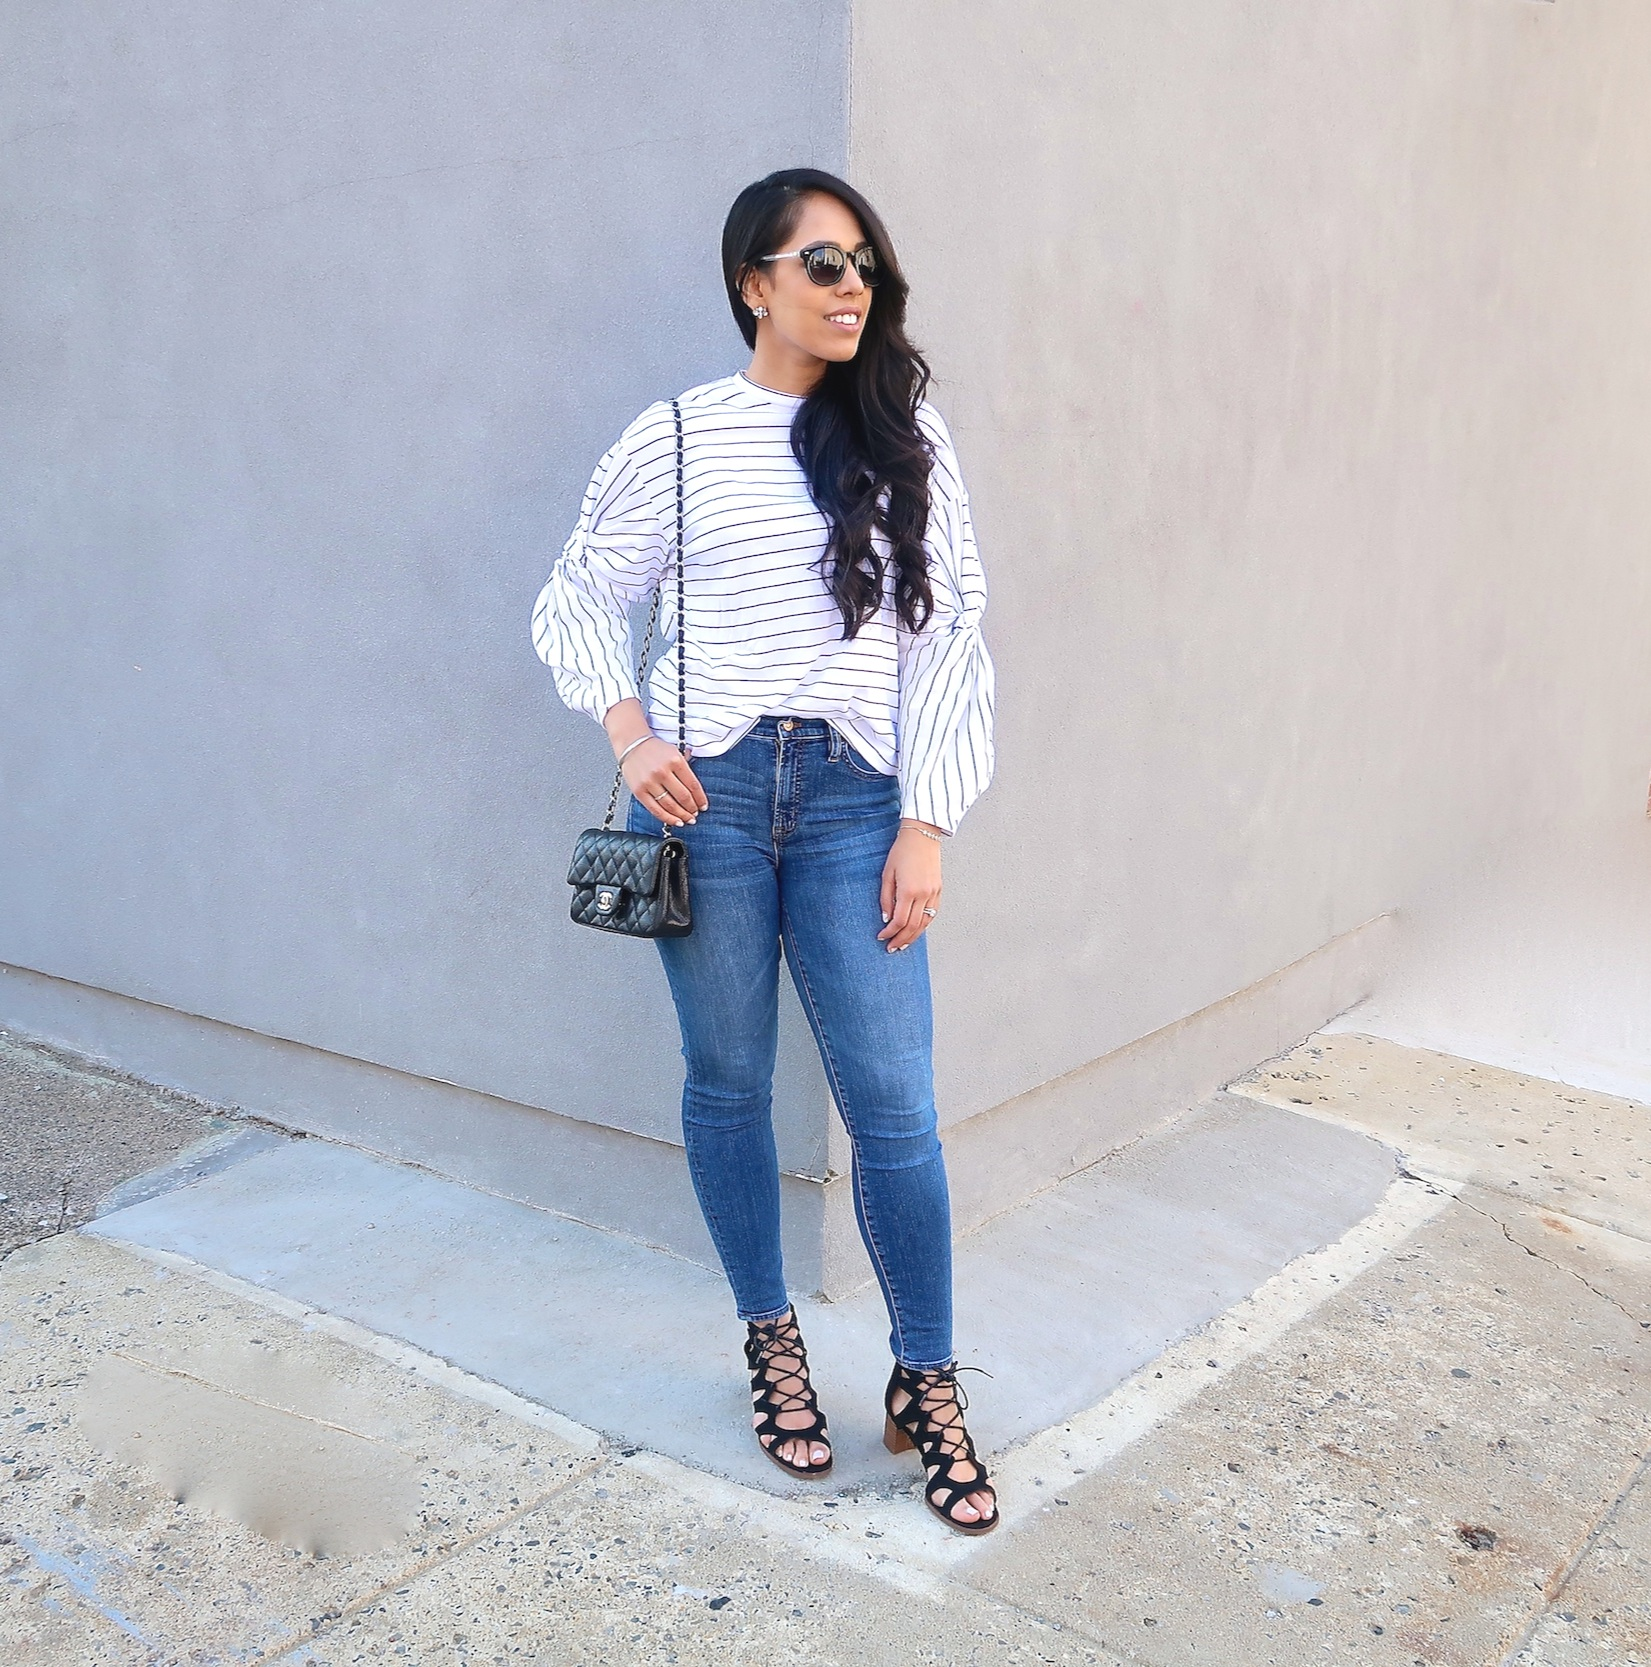 OOTD-outfit-inspiration-spring-style-stripe-top.JPG